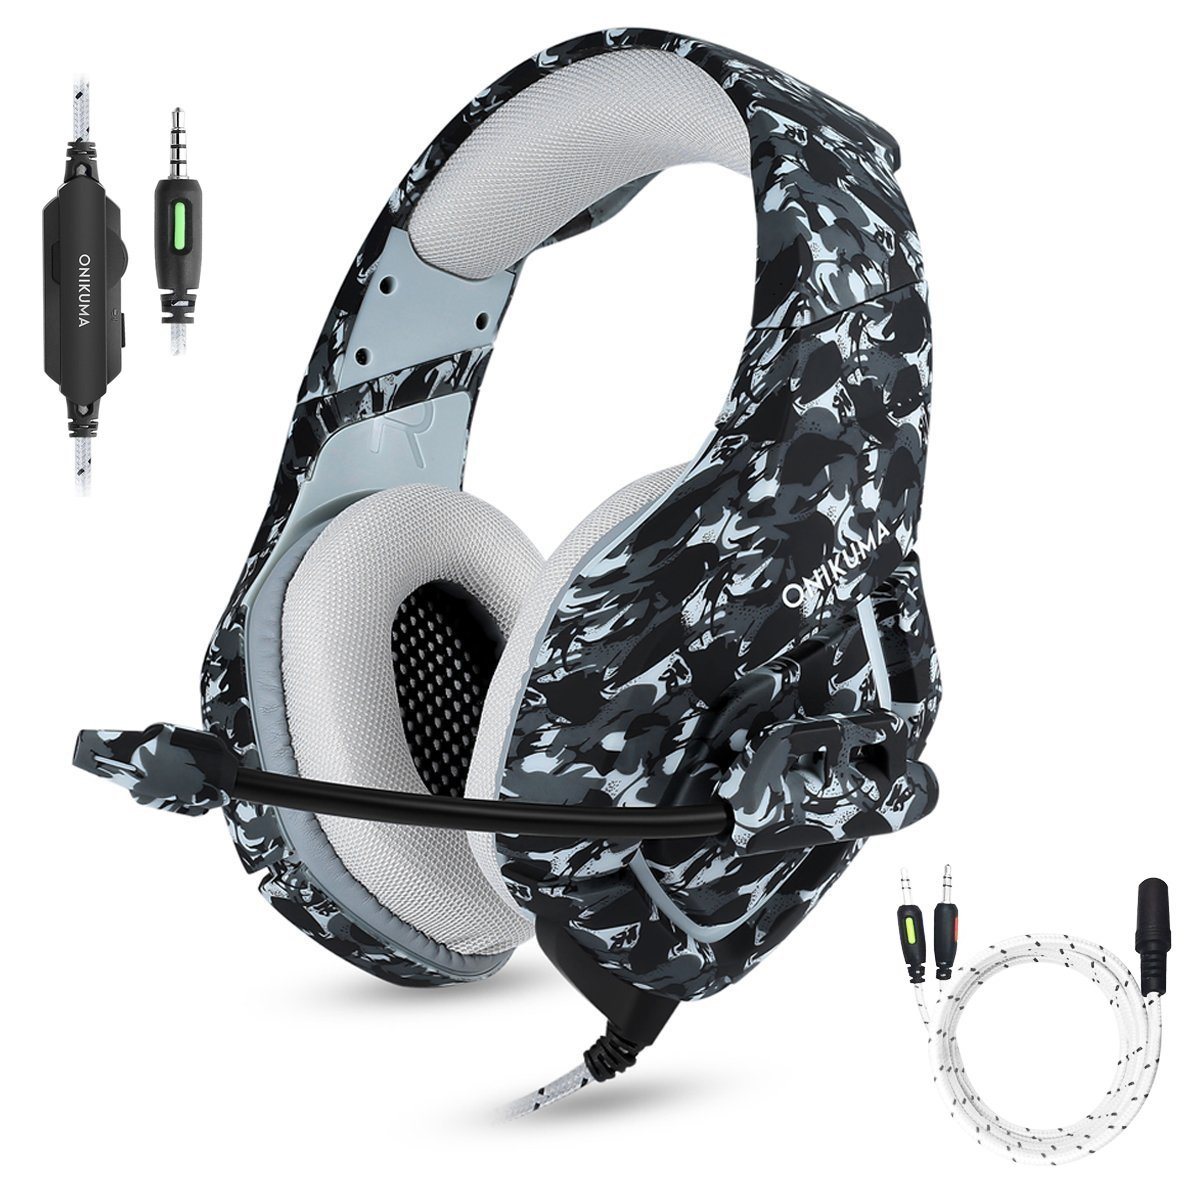 Gaming Headset with Microphone for PS4 PC Xbox One, Stereo Over Ear Gamer Headphones with Mic Noise Cancelling for Laptop, Mac, Smart Phones, Nintendo Switch, Playstation 4 - Camo by AIGEL